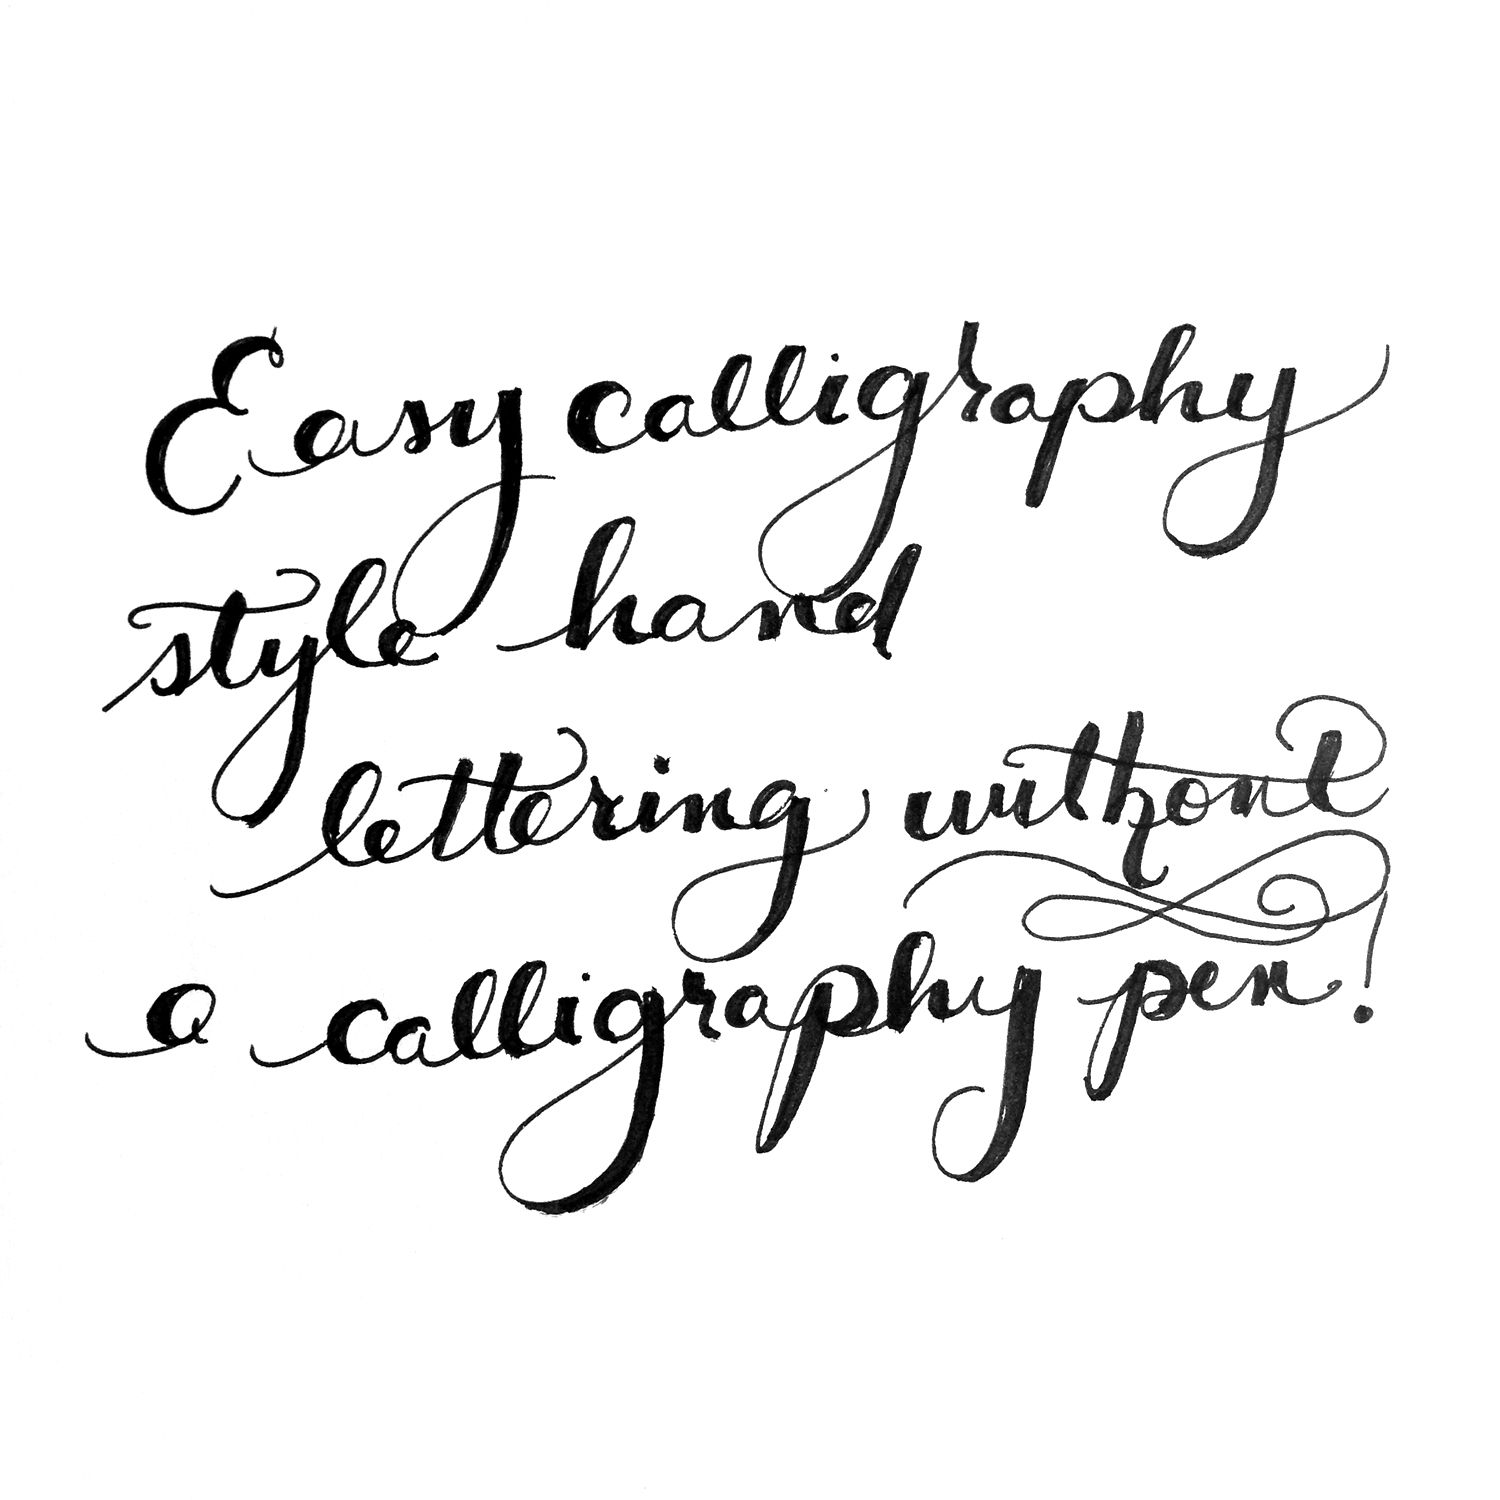 ... to Letter Hand Calligraphy without a Calligraphy pen – MIDWINTER CO